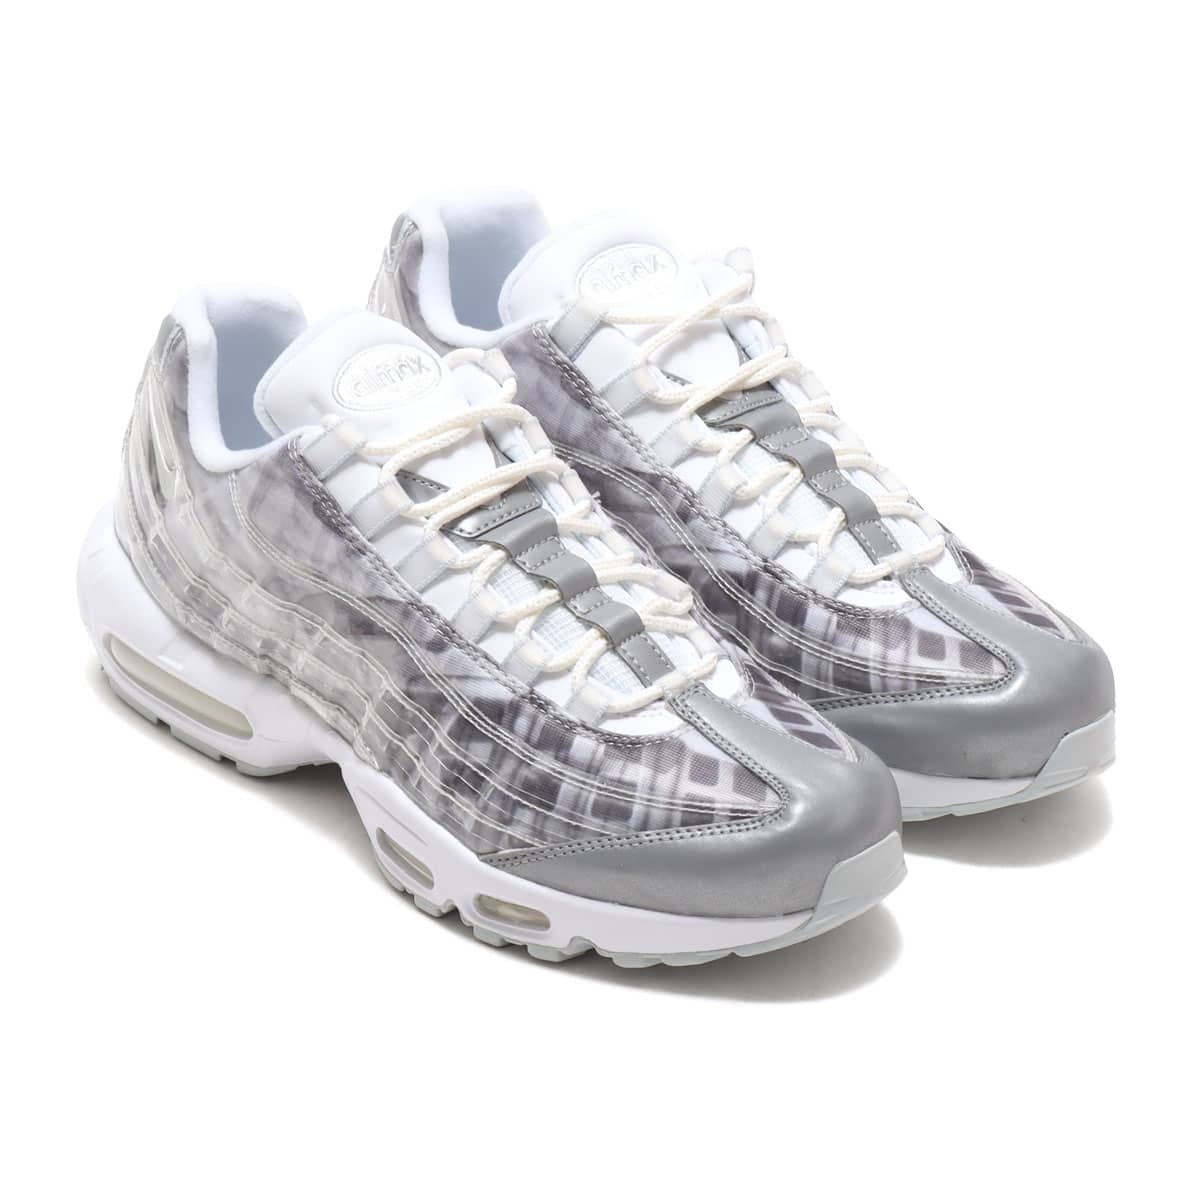 NIKE AIR MAX 95 WHITE/SAIL-PURE PLATINUM-SMOKE GREY 20FA-I_photo_large